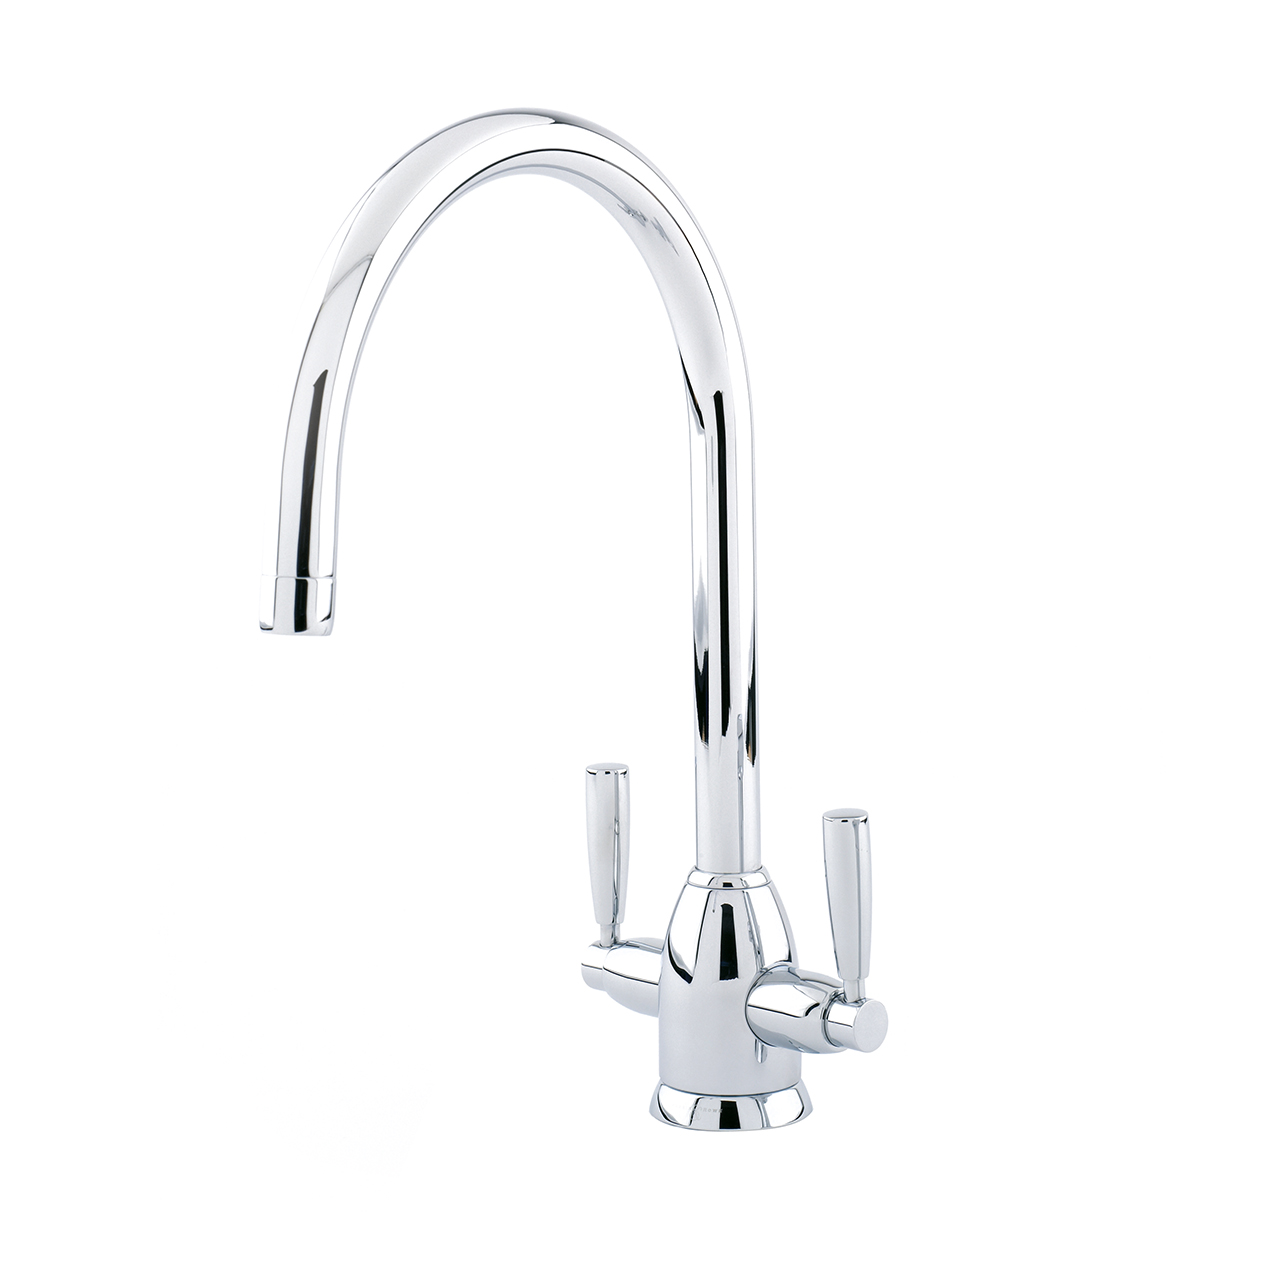 4861 Perrin & Rowe Oberon Monobloc Sink Mixer Tap C Spout with Lever ...